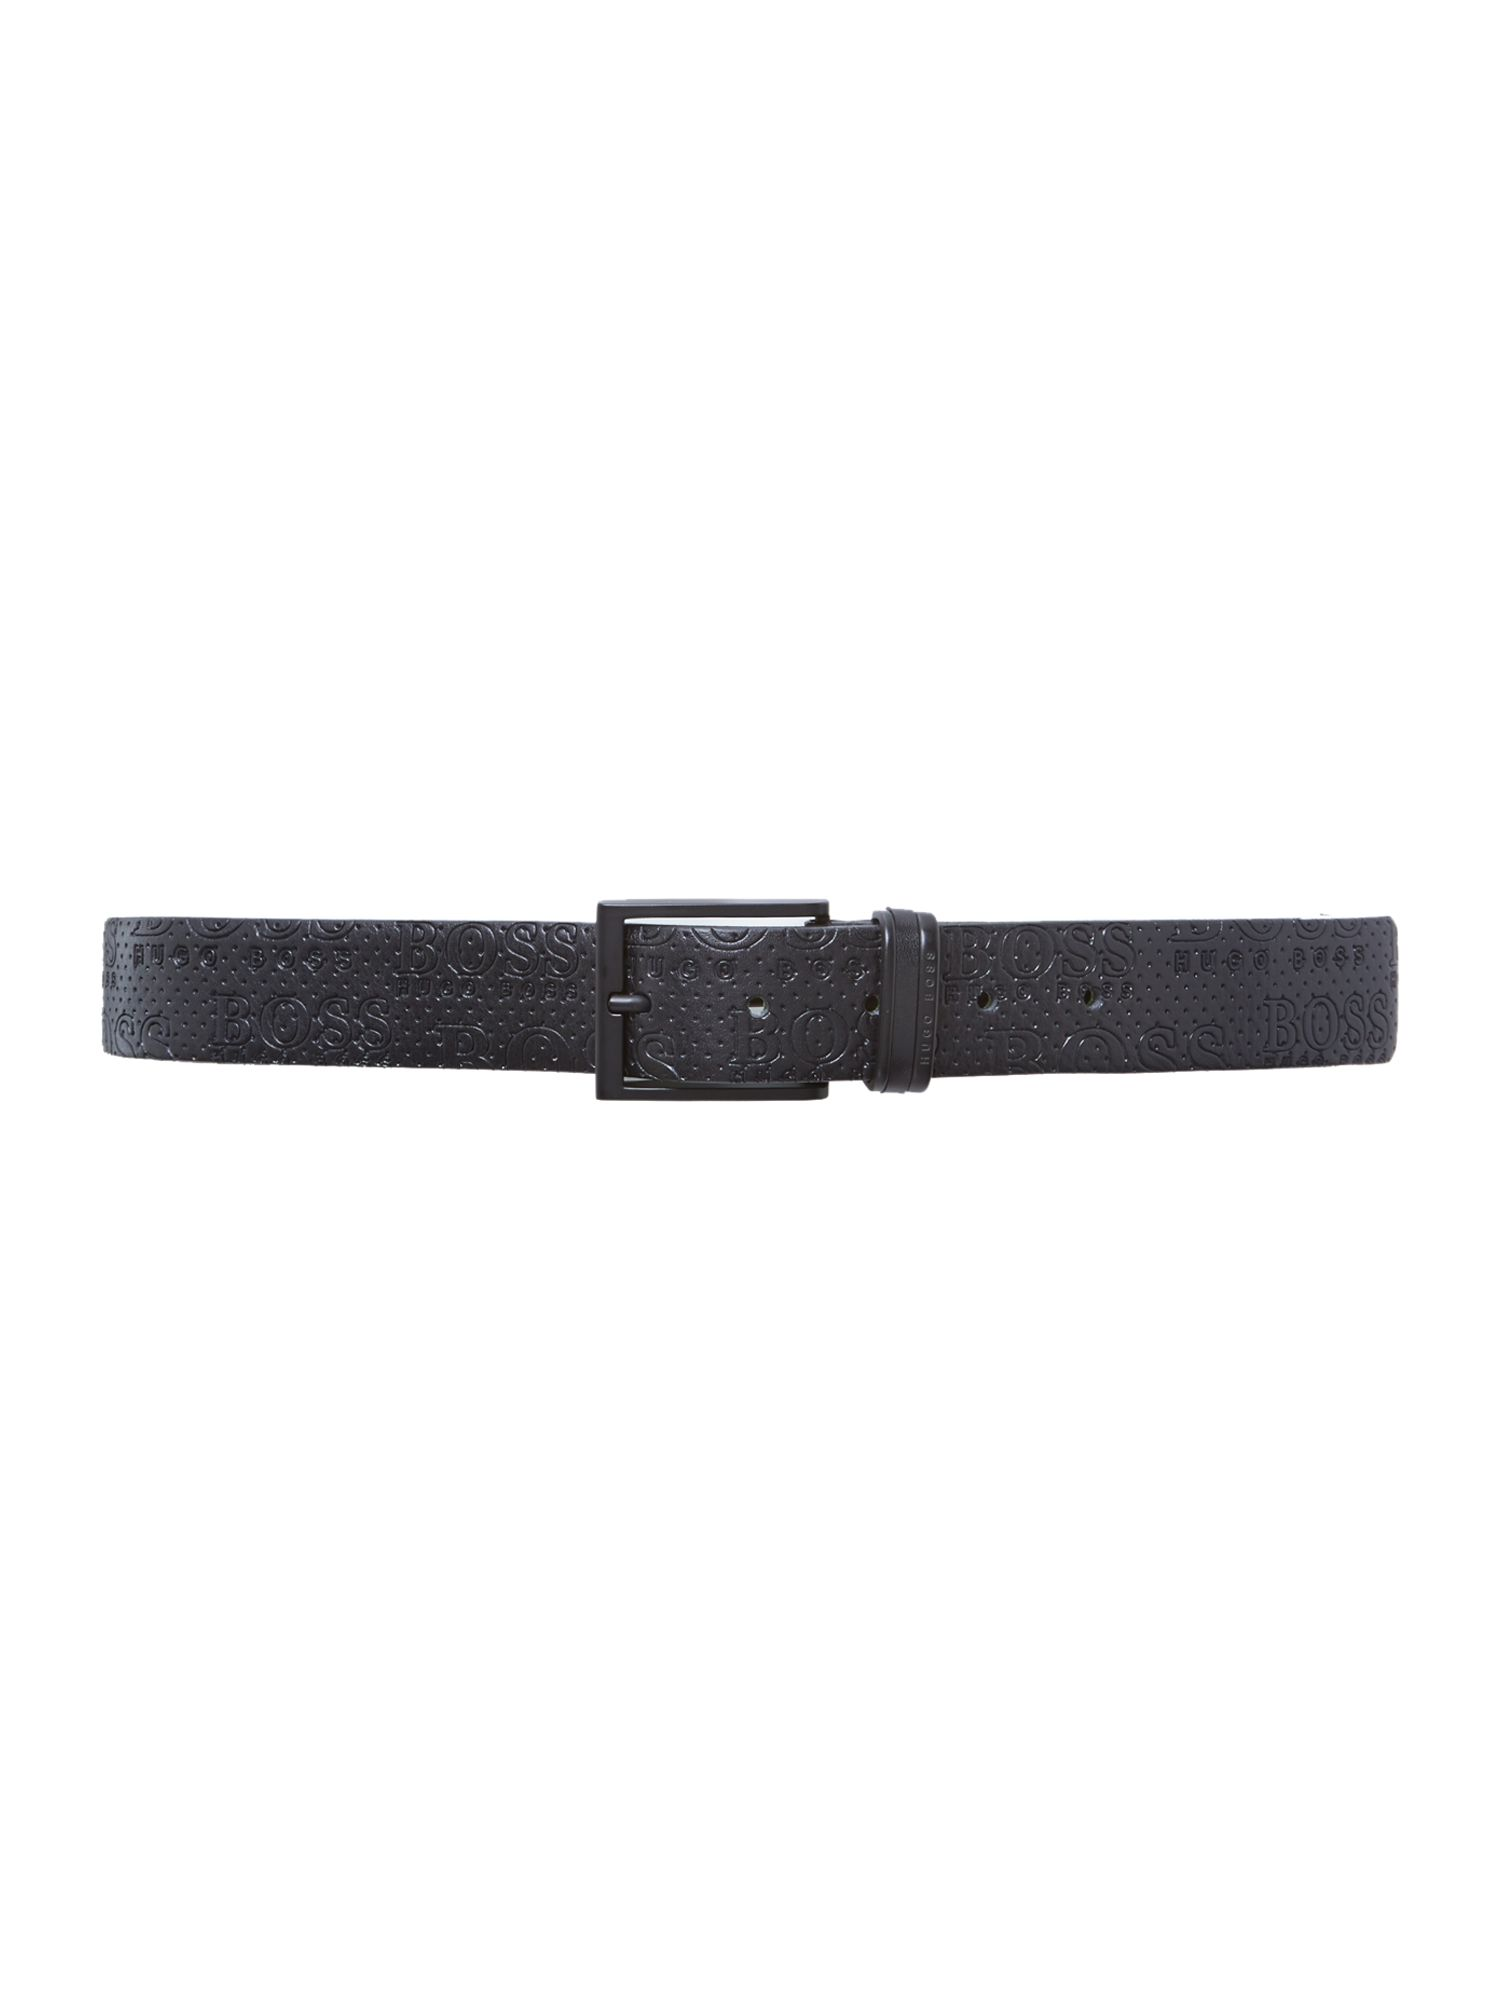 Tamirto all over logo belt